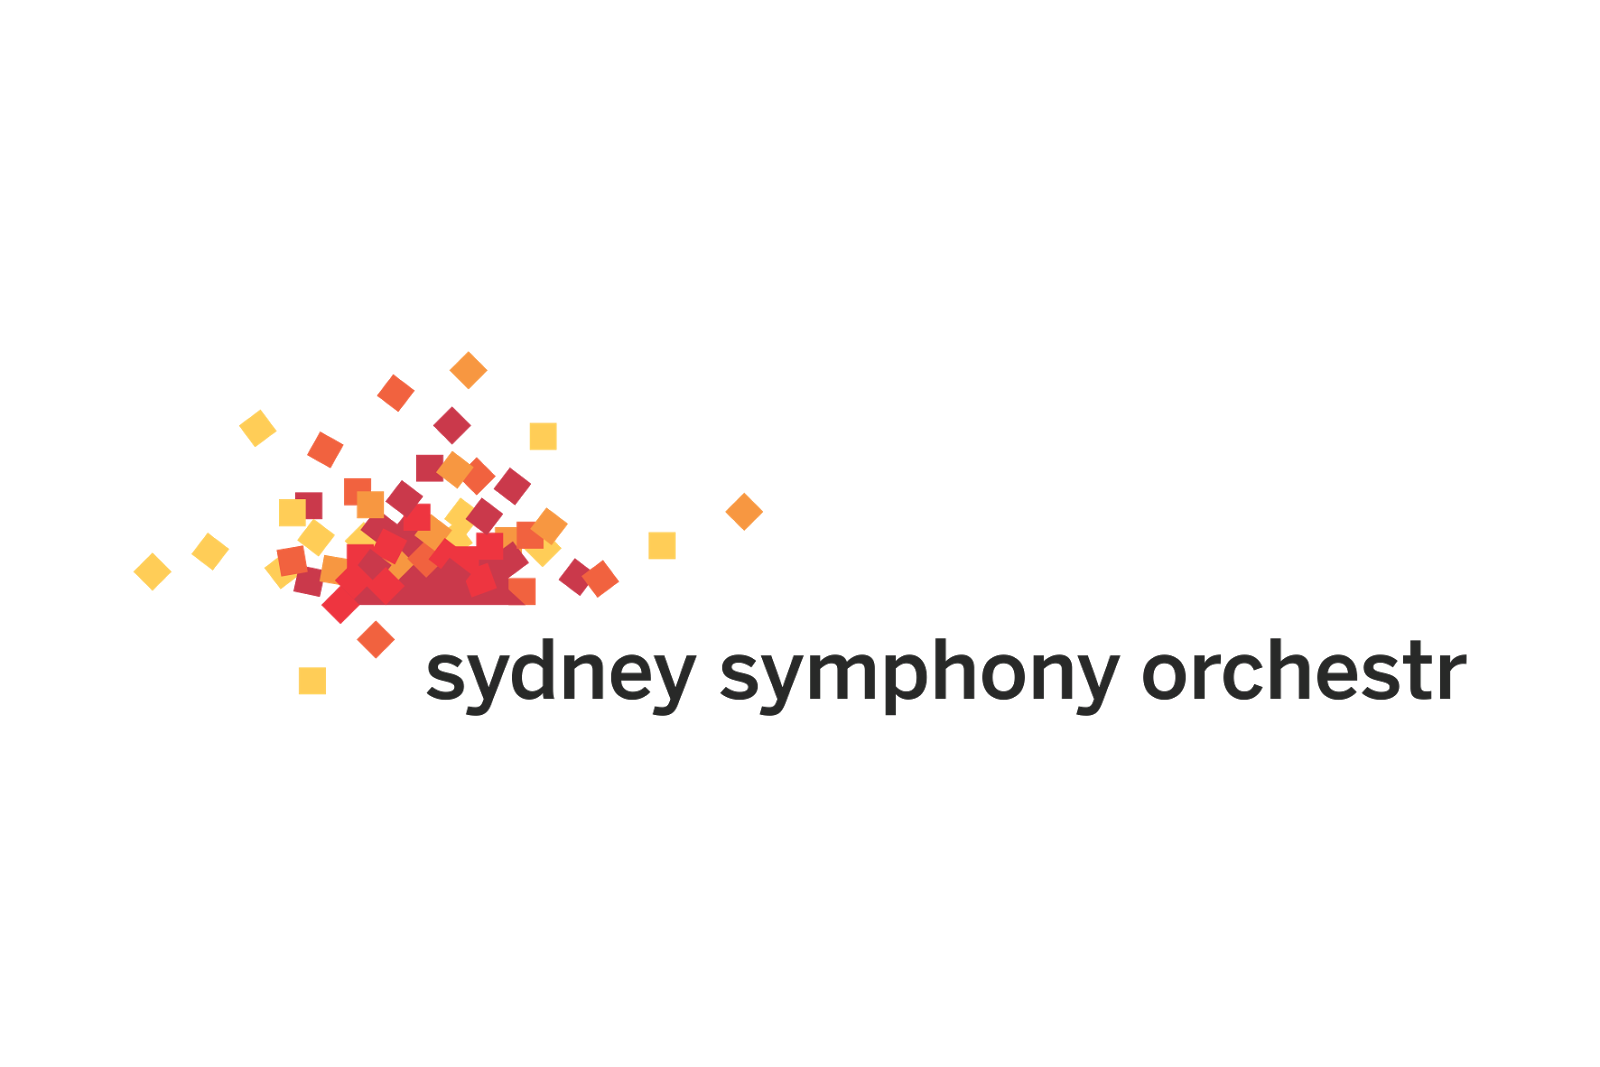 sydney symphony orchestra Sydney symphony orchestra announces 2019 season we speak to david robertson as the sso looks to the future in a season of blockbuster concerts and new appointments, from lang lang's return to stuart skelton in peter grimes.